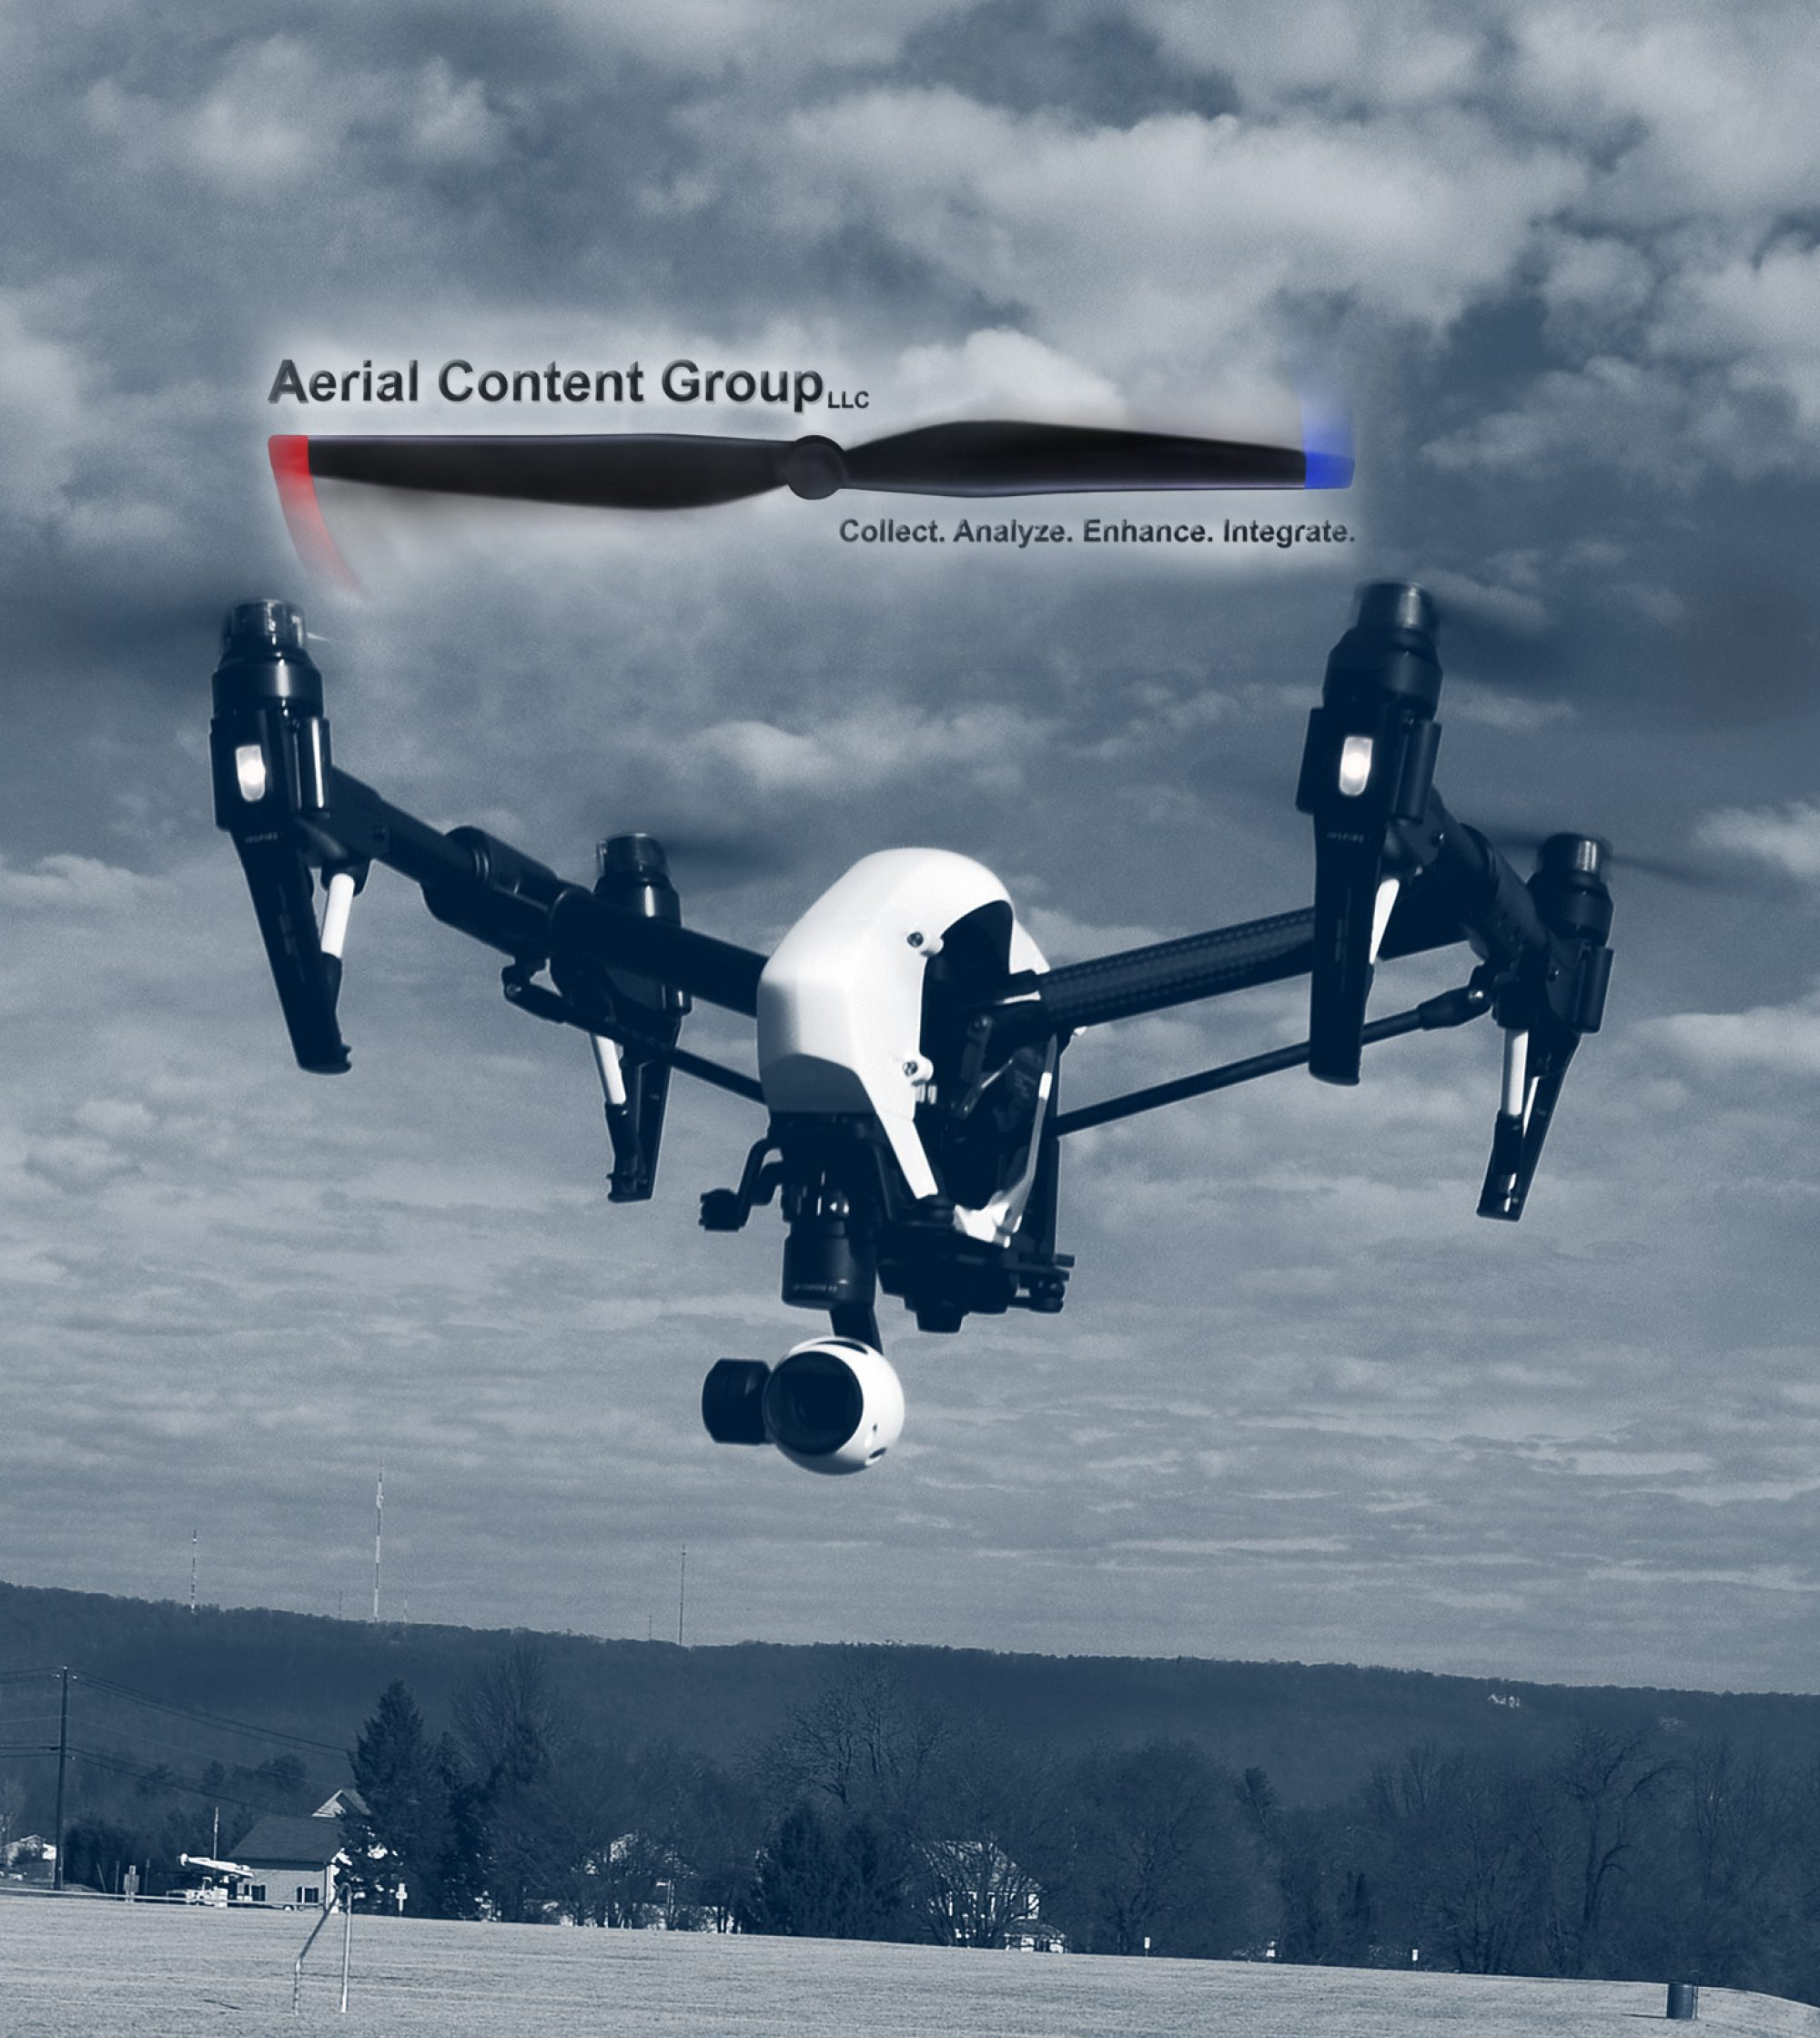 Aerial Content Group,LLC